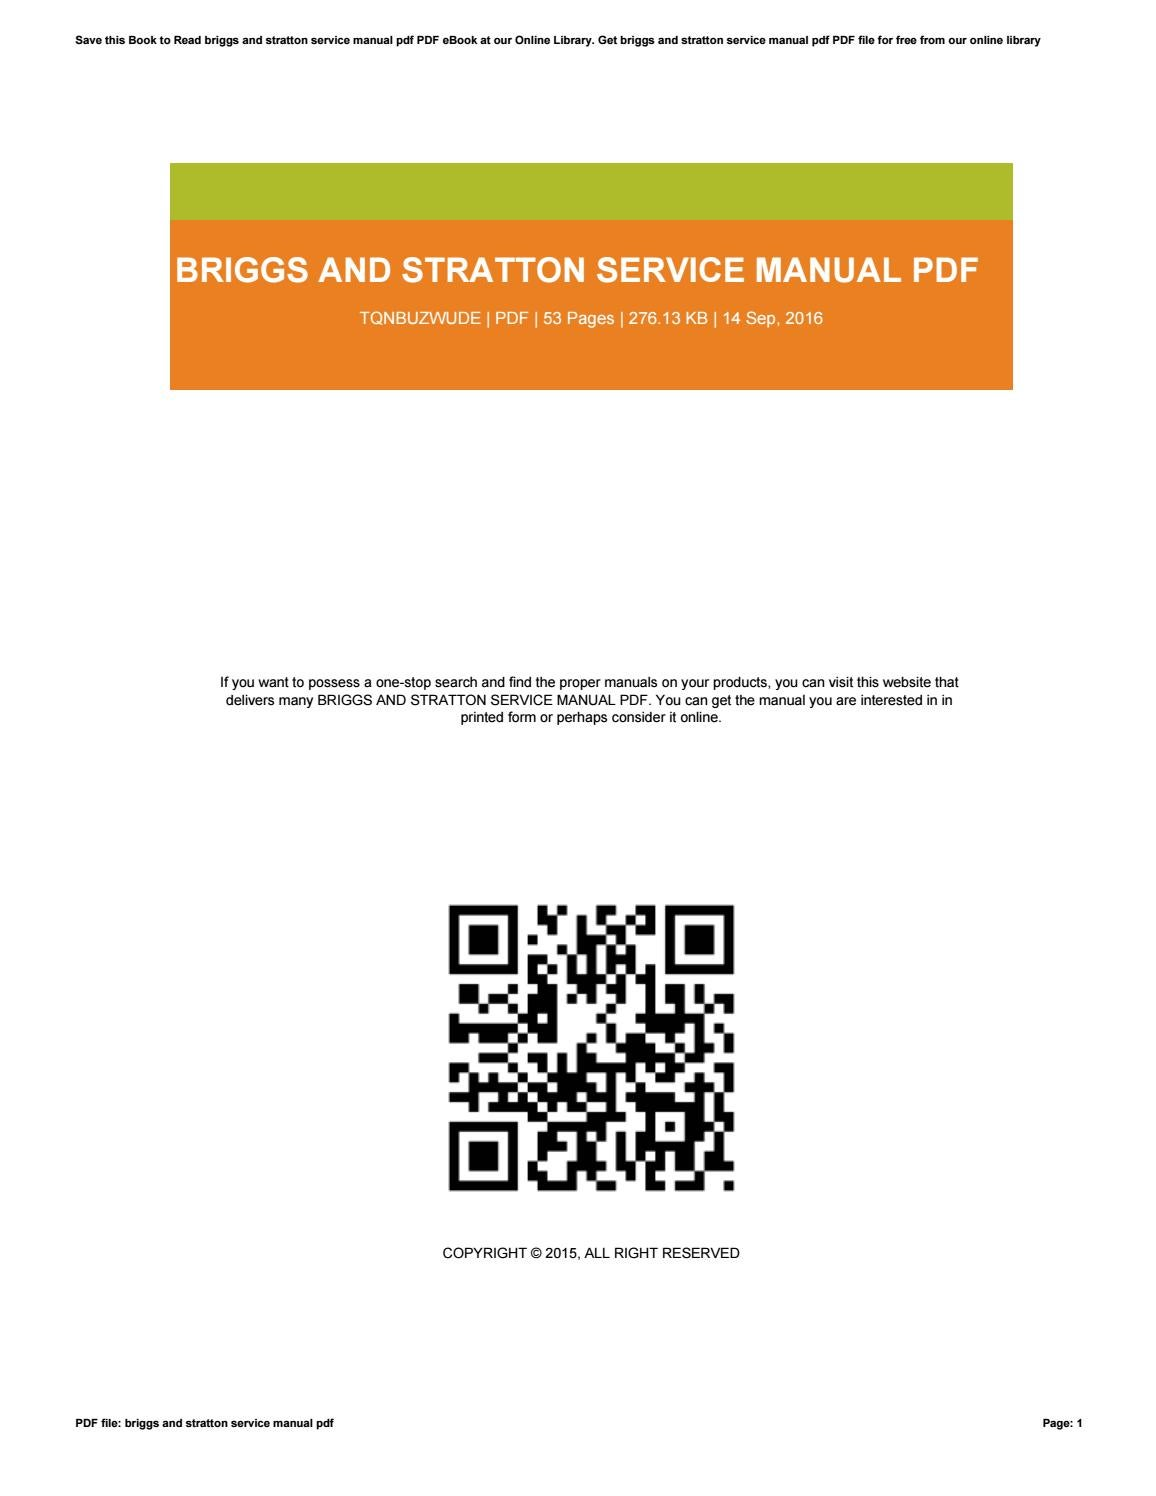 briggs and stratton manual model 5s ebook